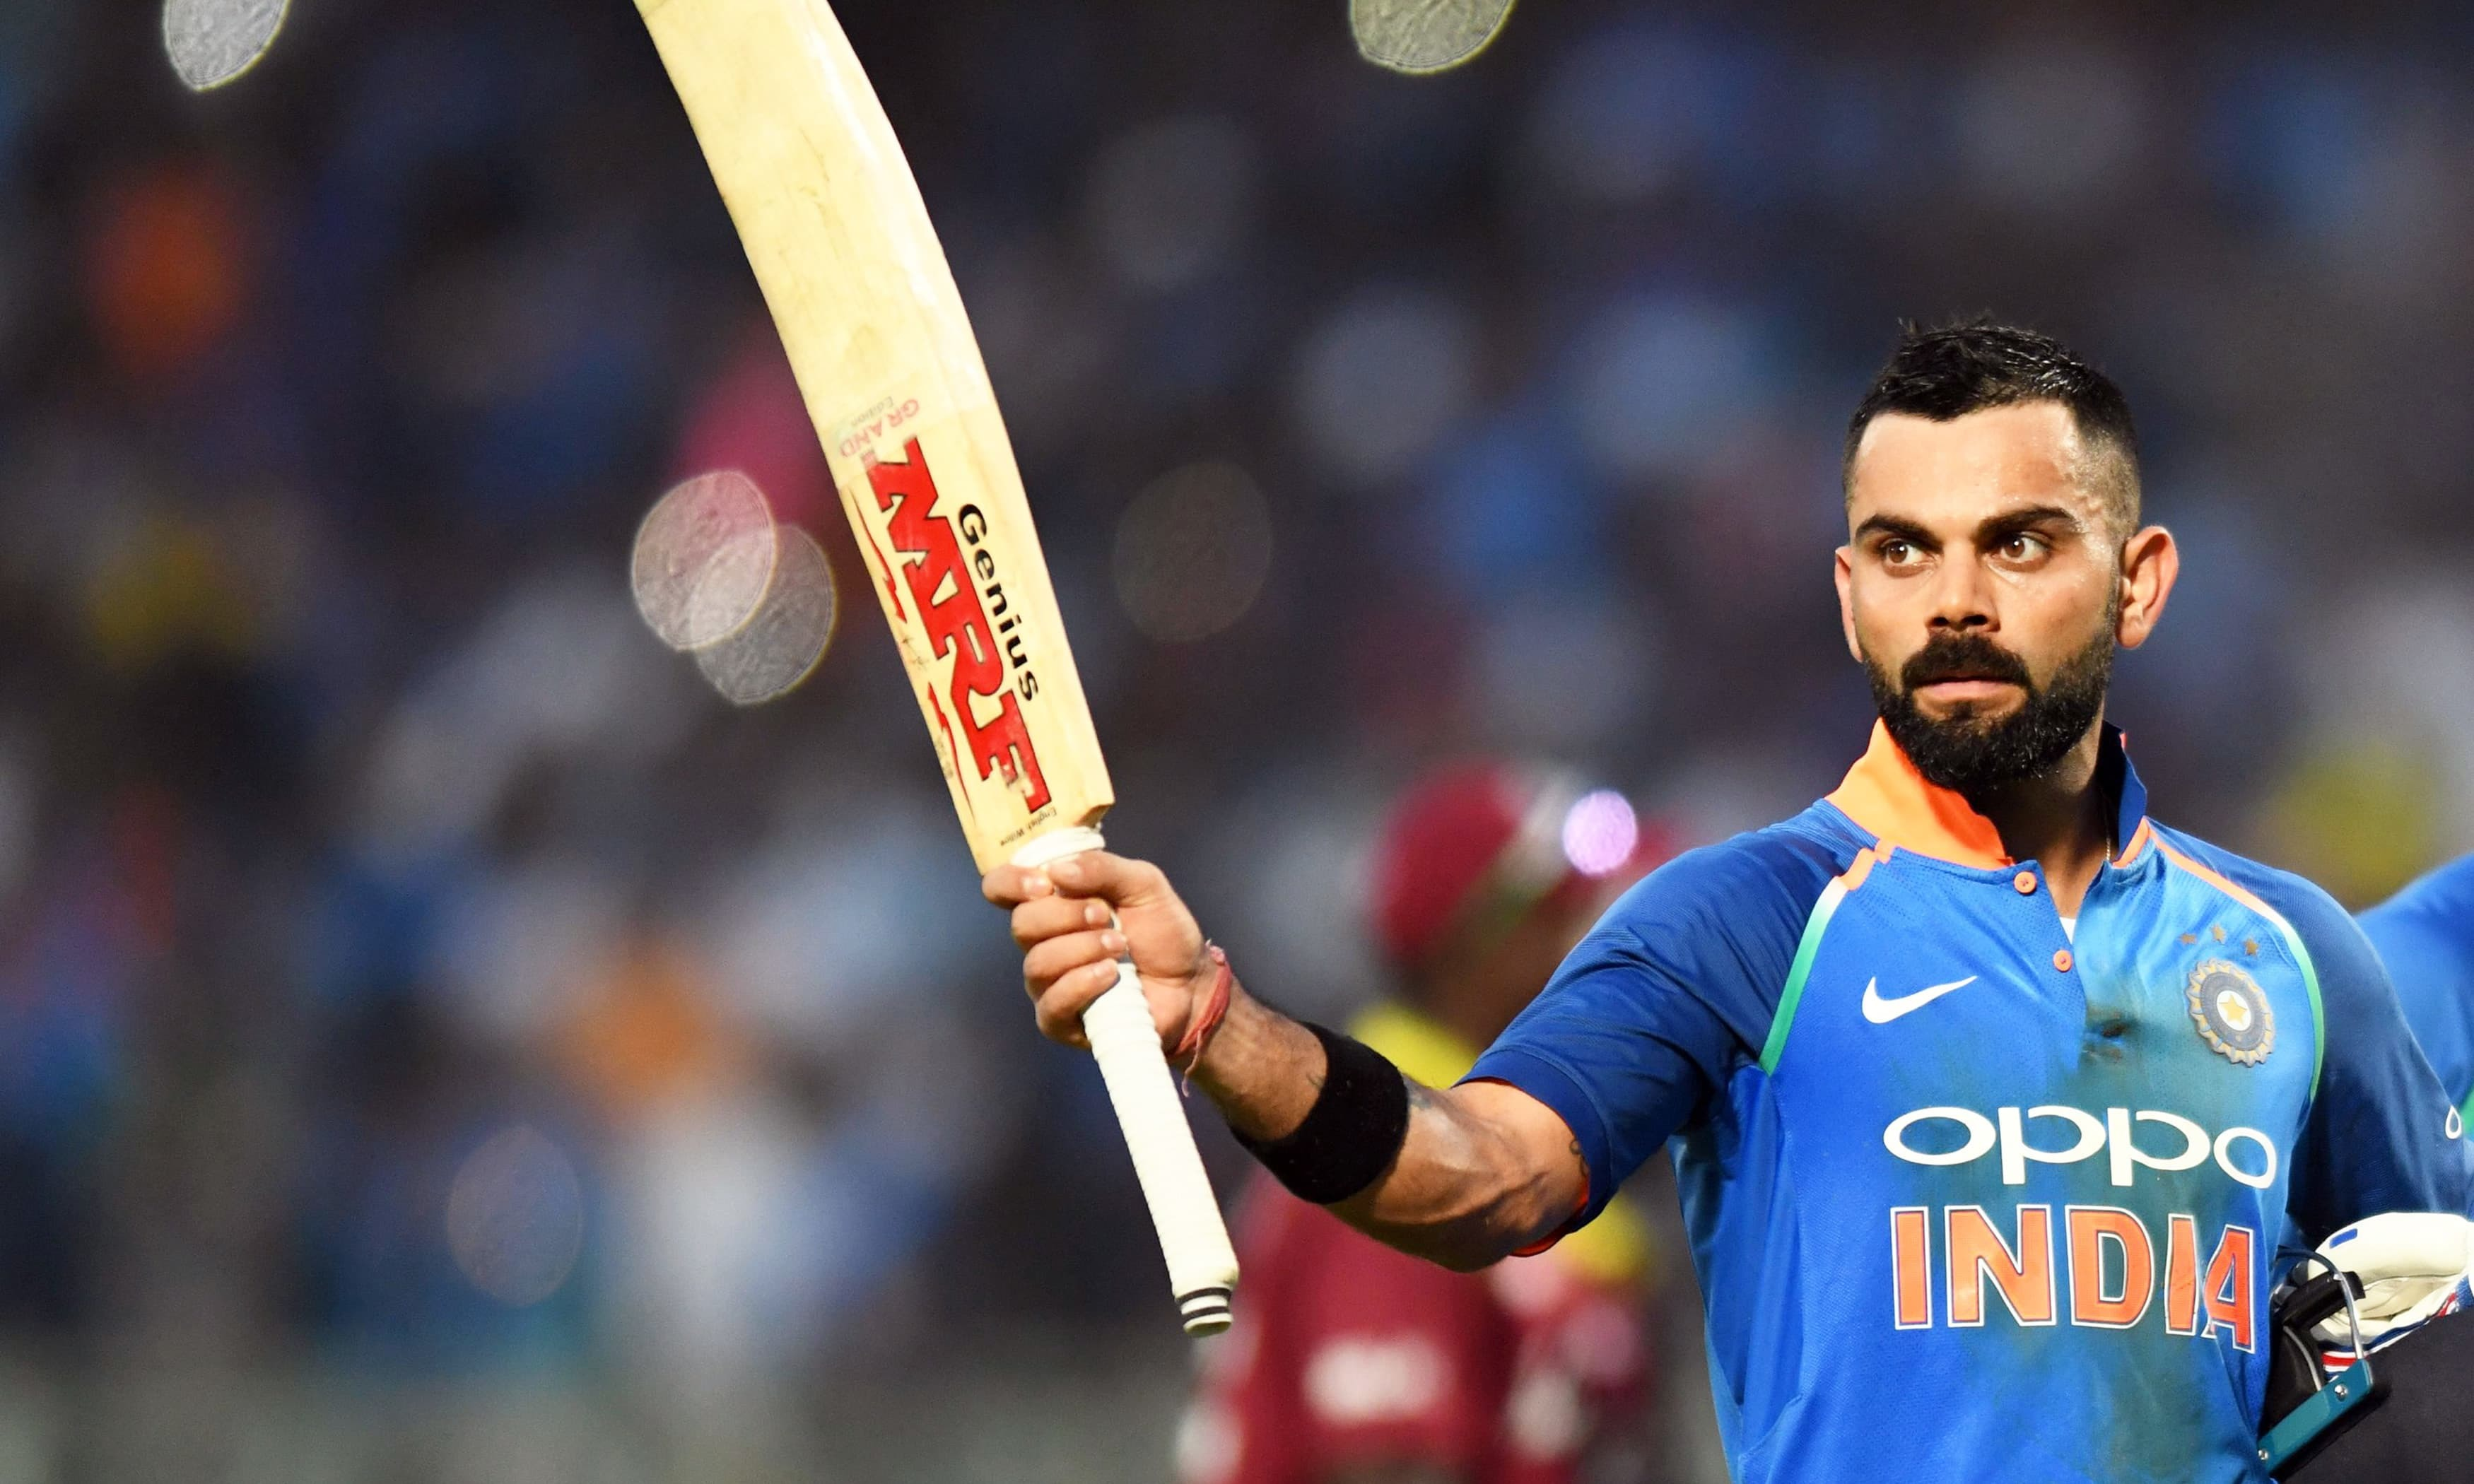 Virat Kohli's lean patch on New Zealand tour continues